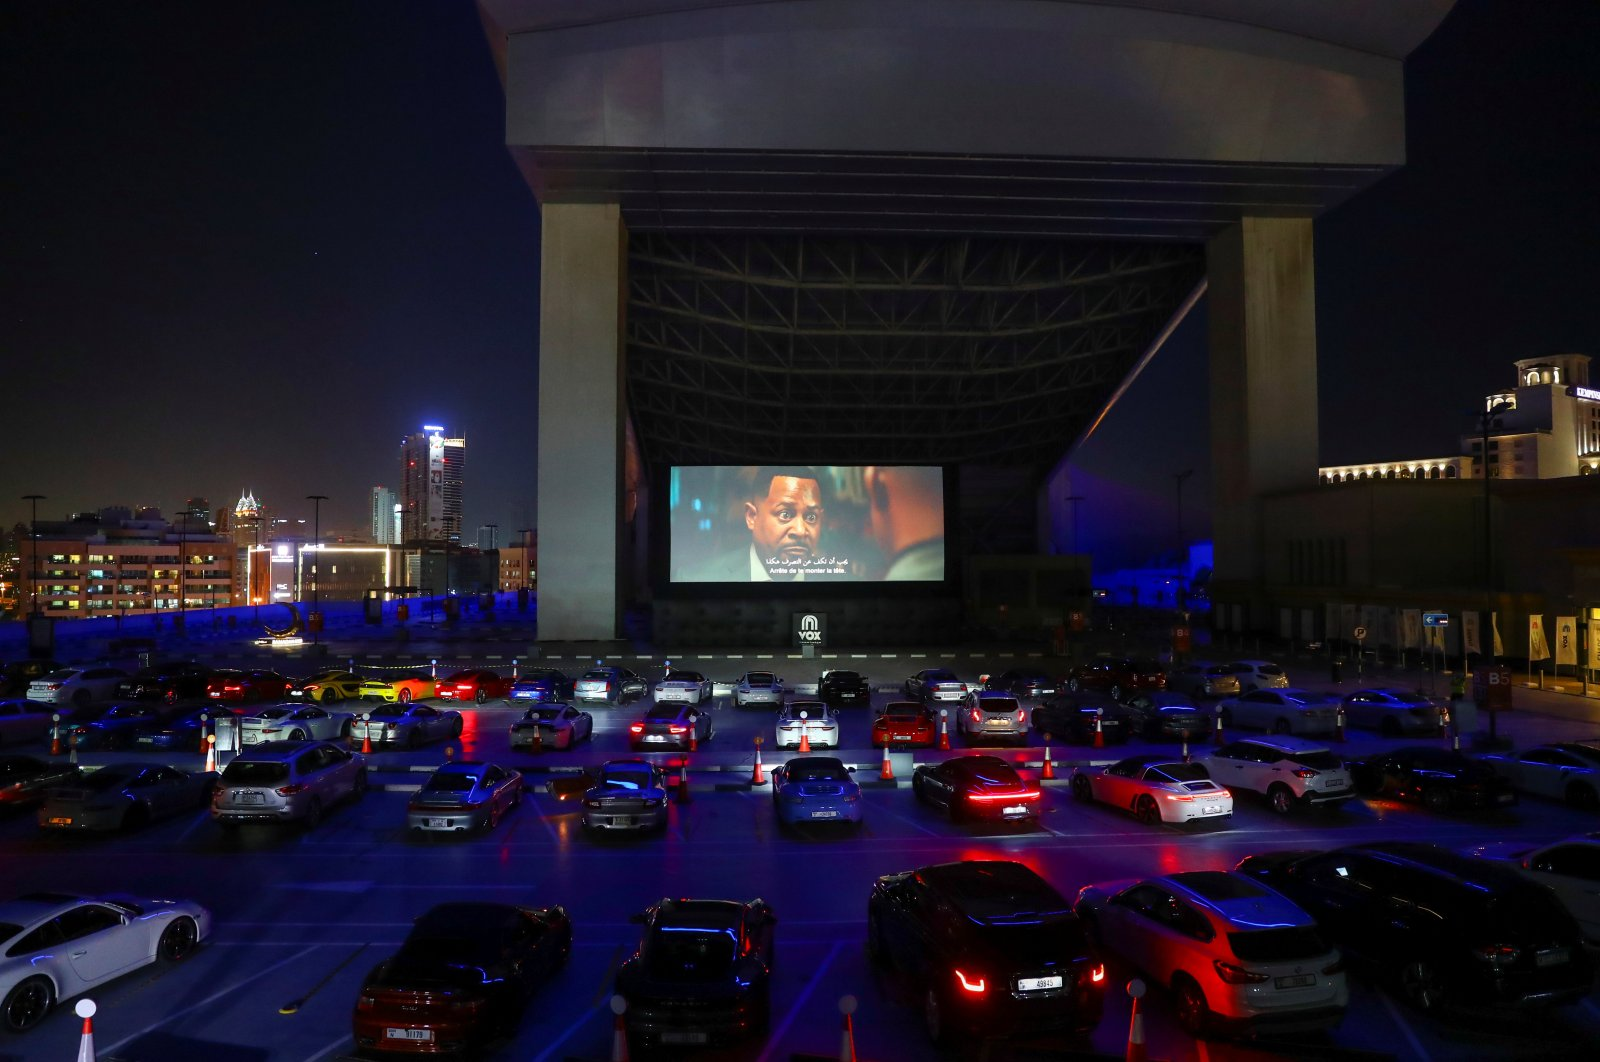 People sit in their cars watching a movie in a drive-in cinema at the Mall of the Emirates during the COVID-19 outbreak, in Dubai, the United Arab Emirates, May 13, 2020. (REUTERS Photo)